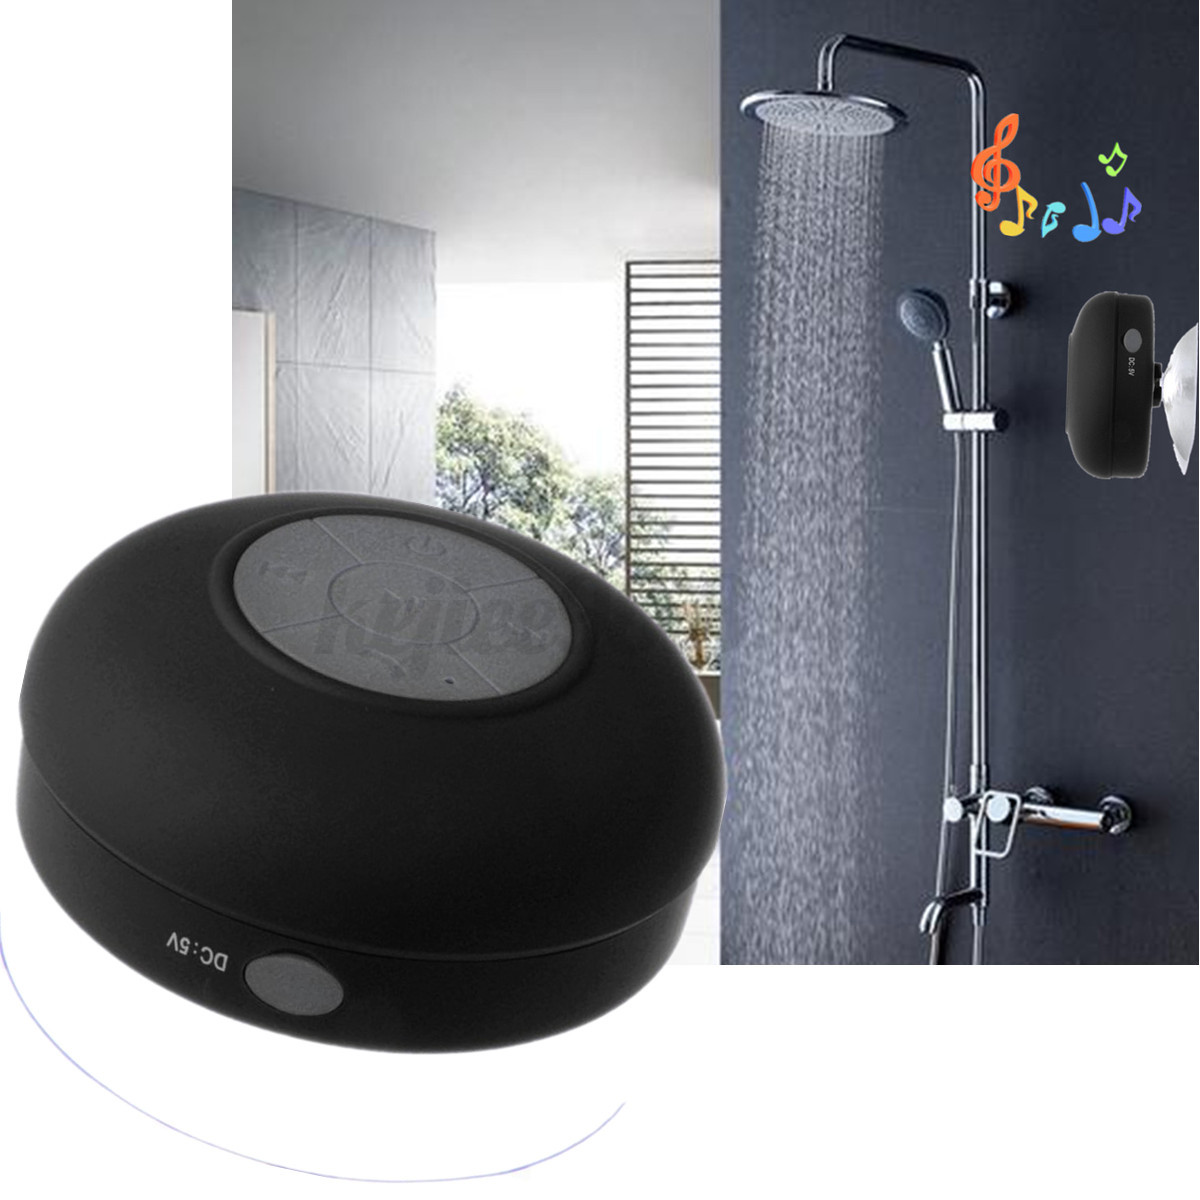 bluetooth lautsprecher saugnapf musik stereo speaker box wasserdicht wireless ebay. Black Bedroom Furniture Sets. Home Design Ideas